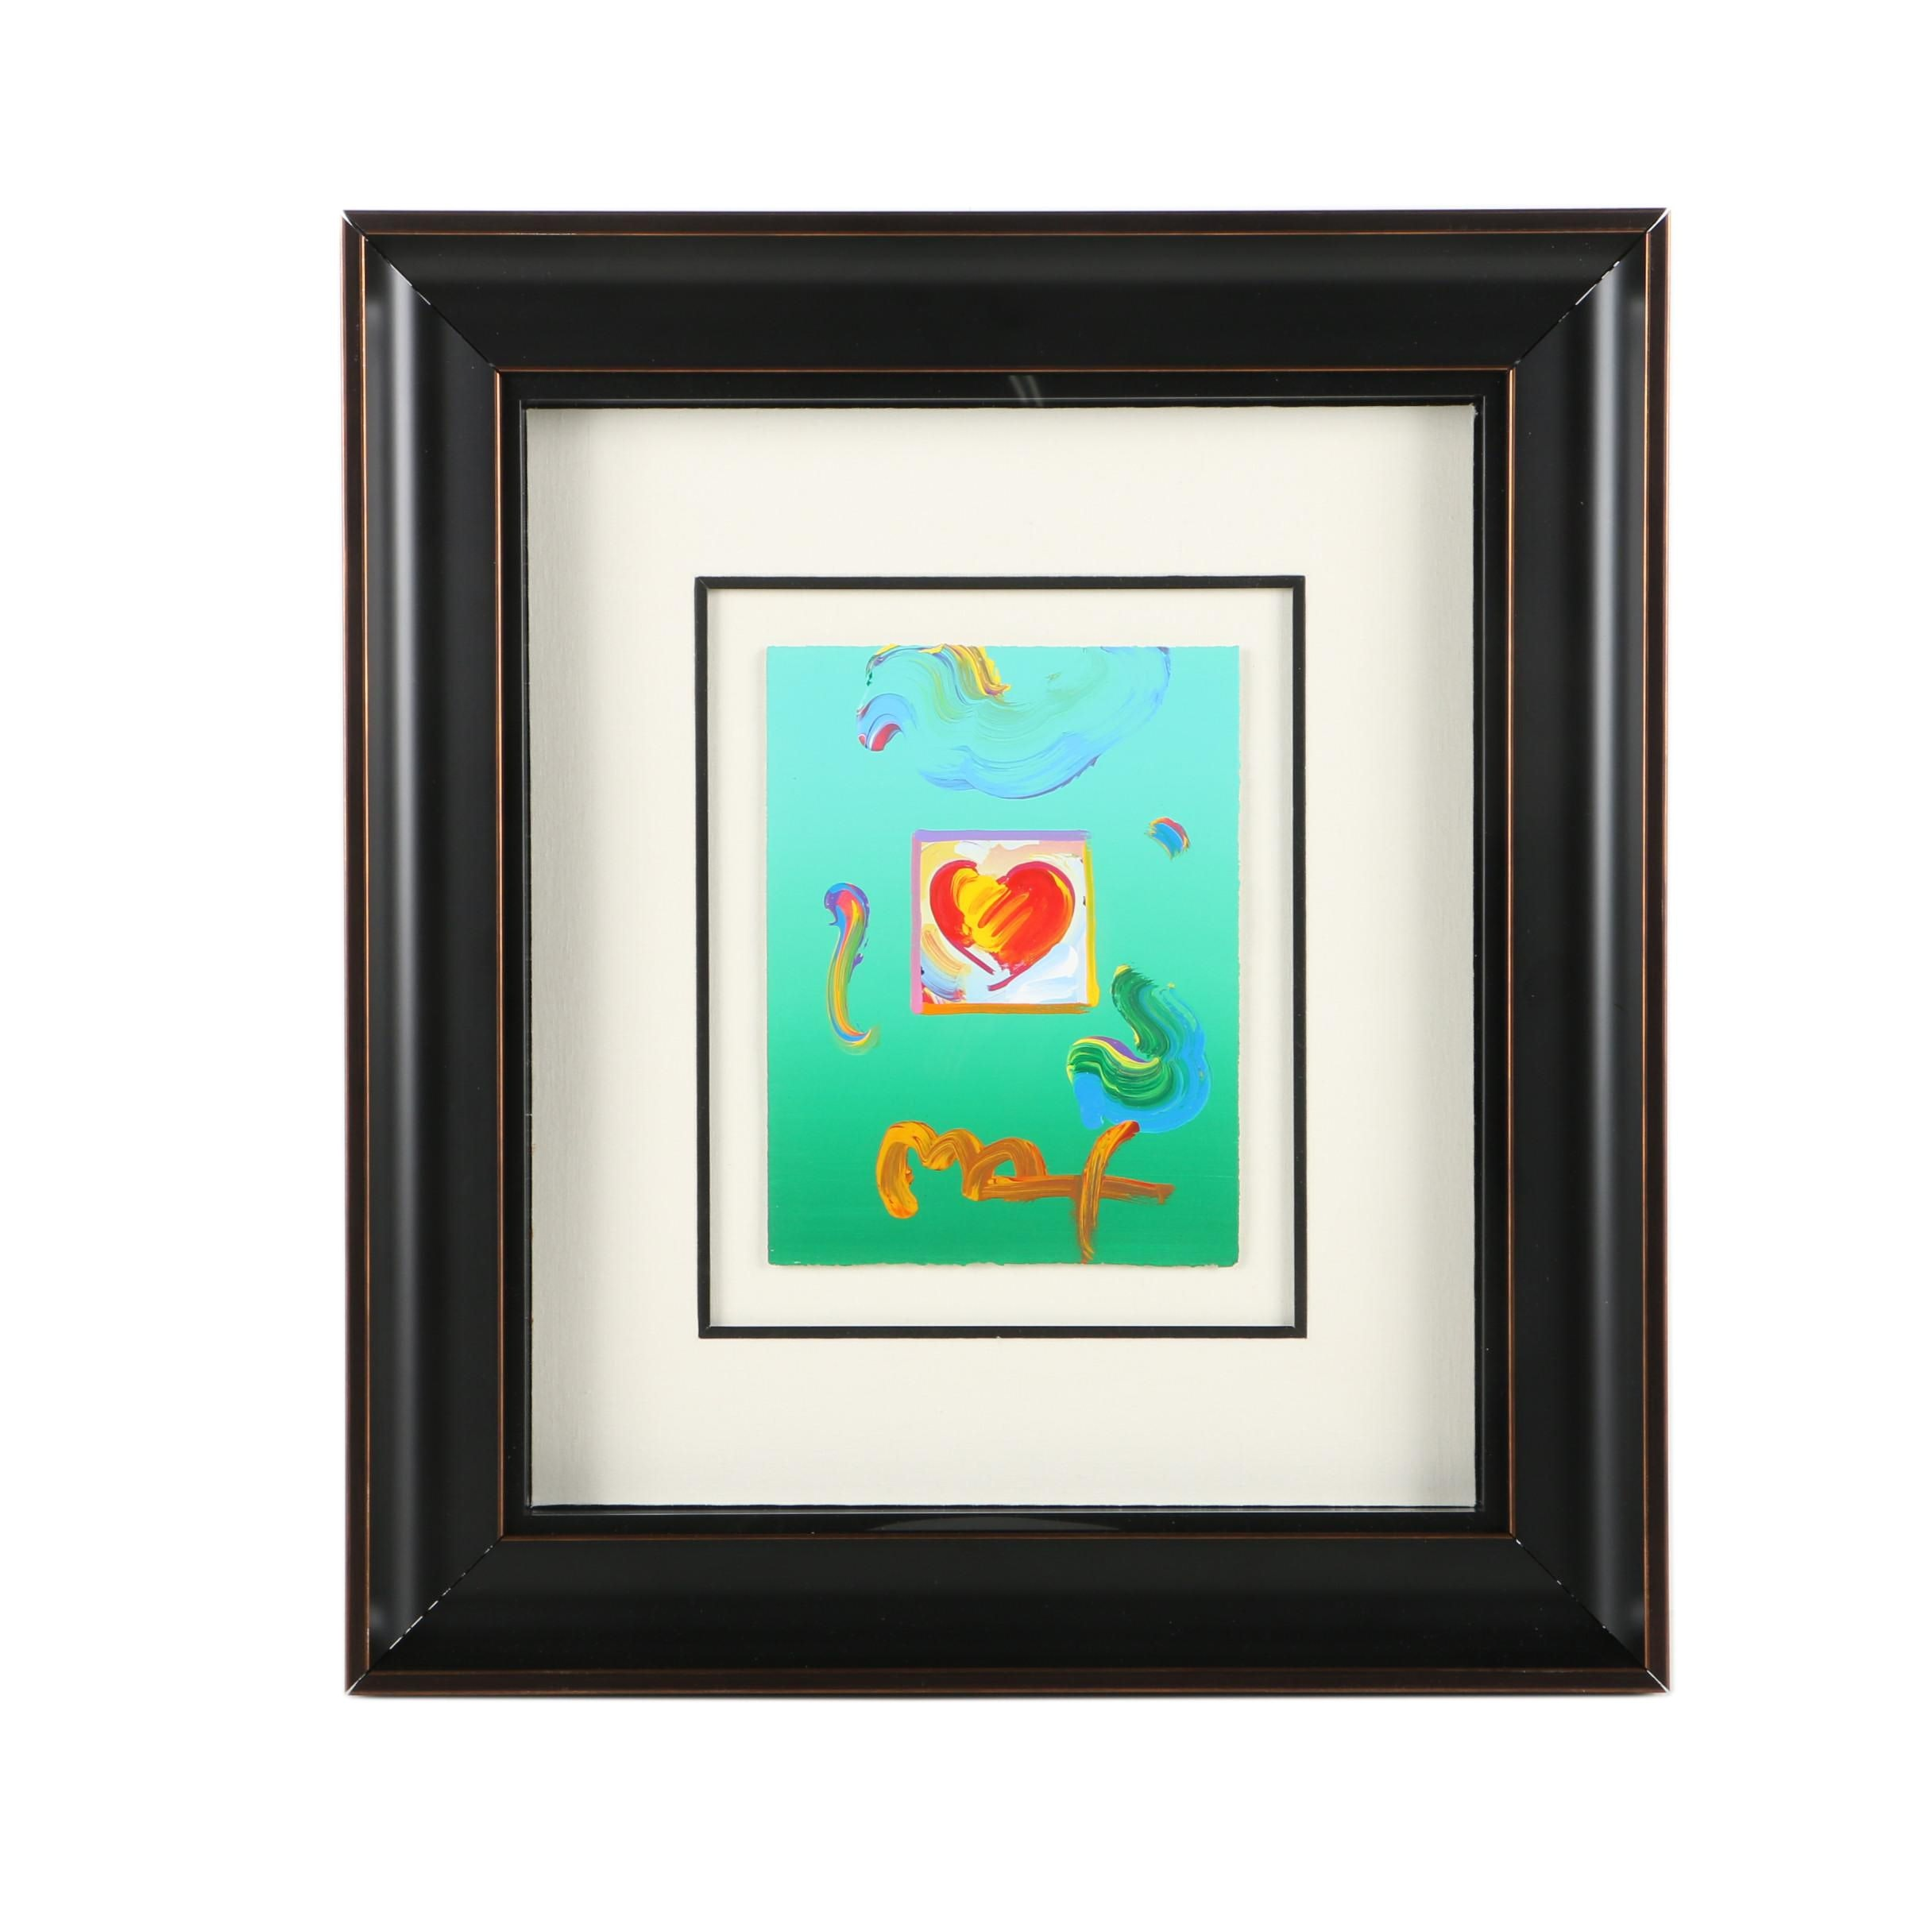 "Peter Max Mixed Media Painting on Paper ""Heart Series 2010 Ver I"""